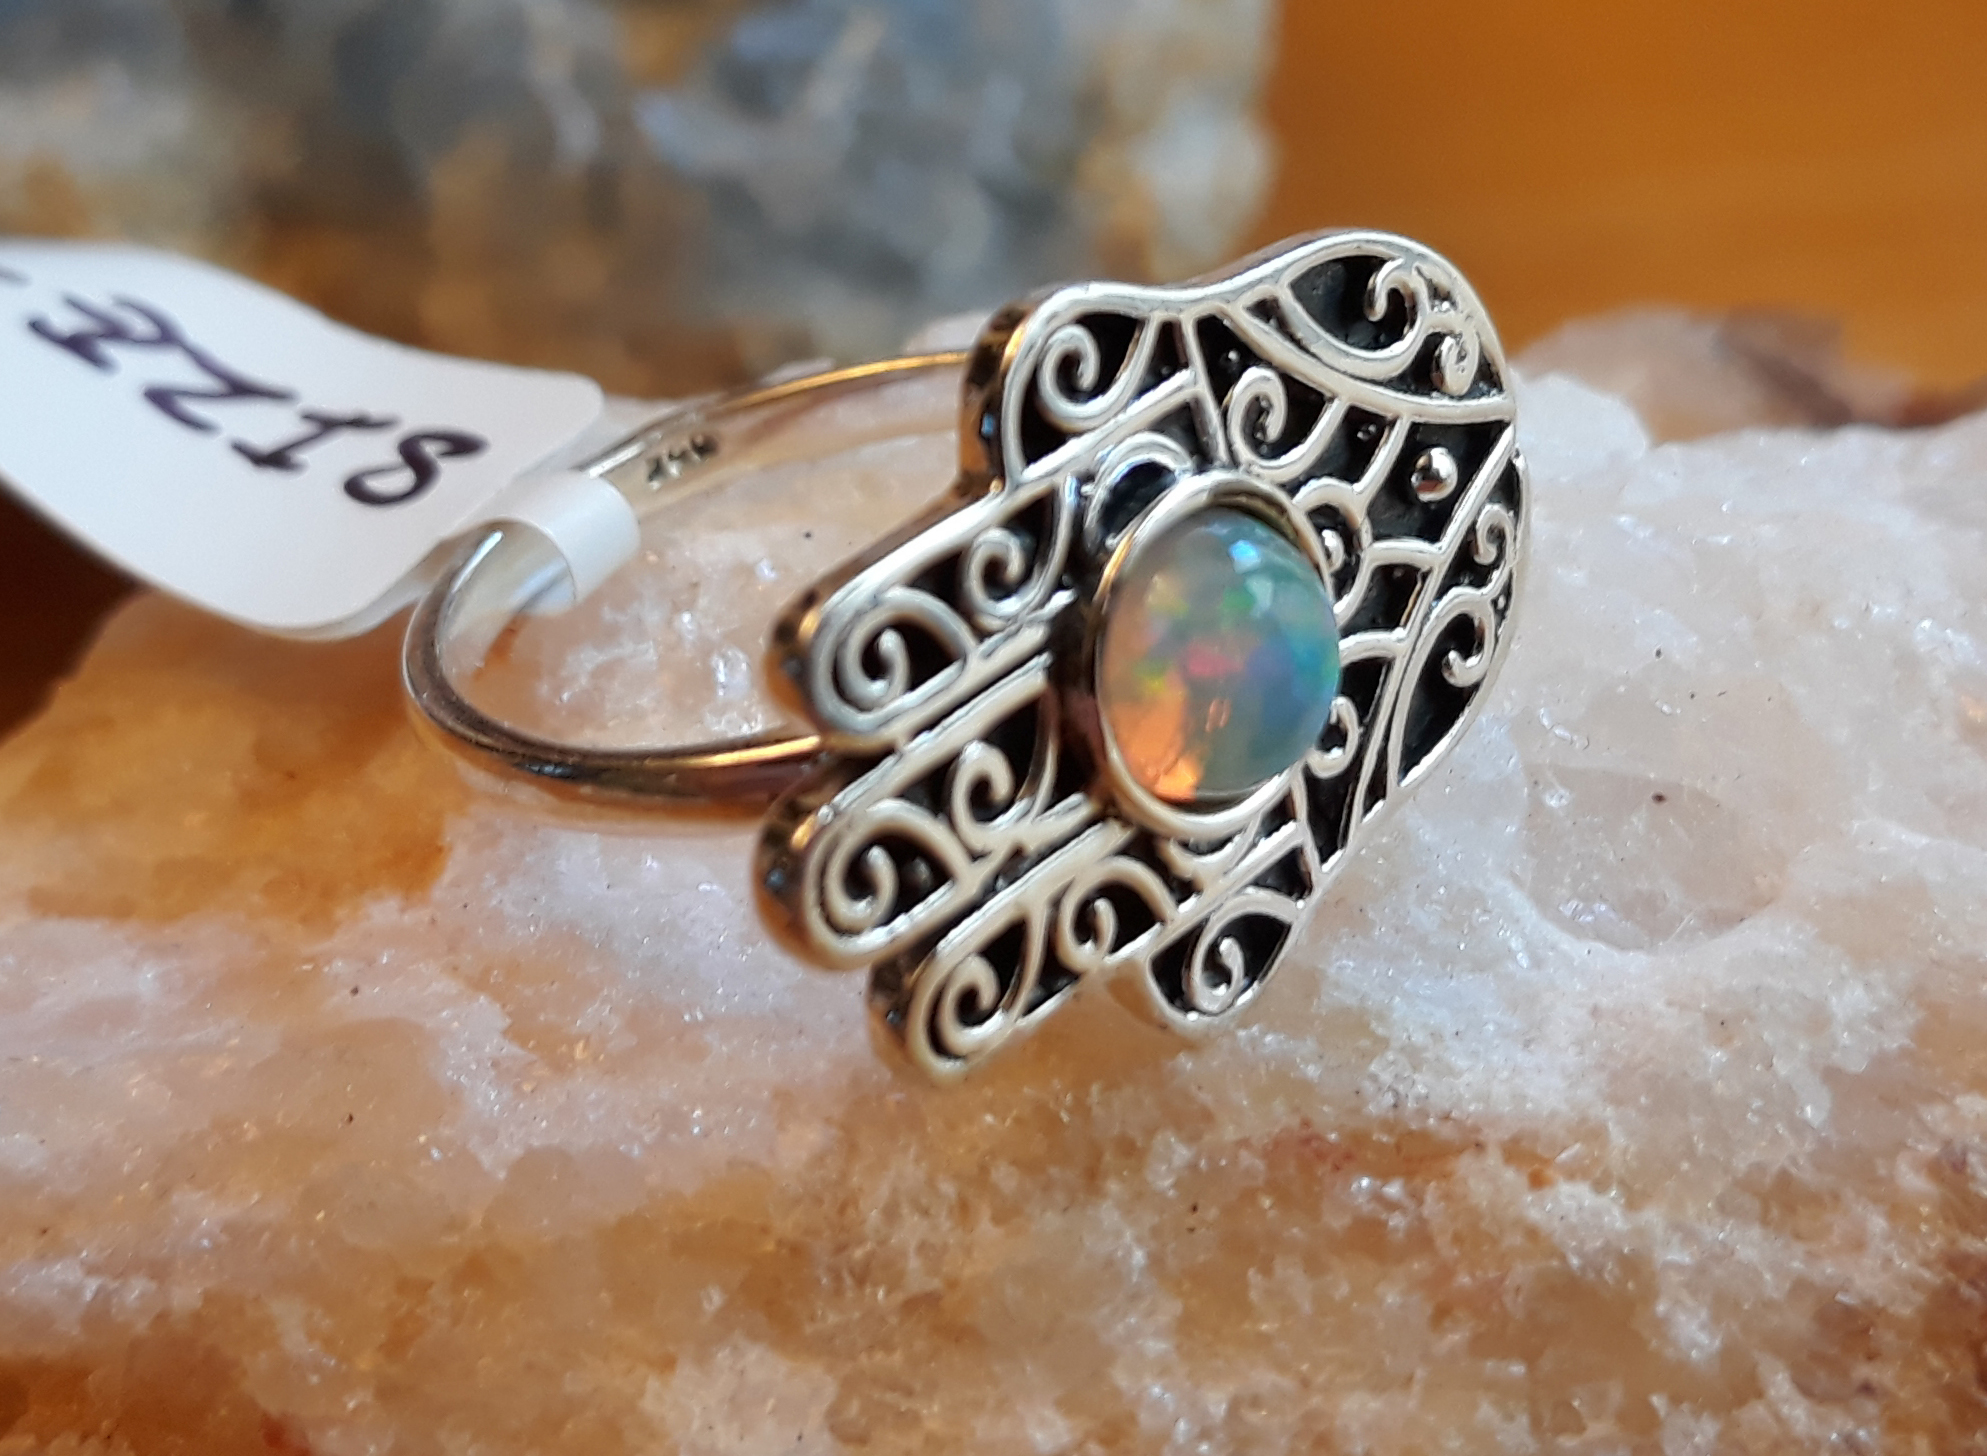 SKU 22128 - a Opal rings Jewelry Design image